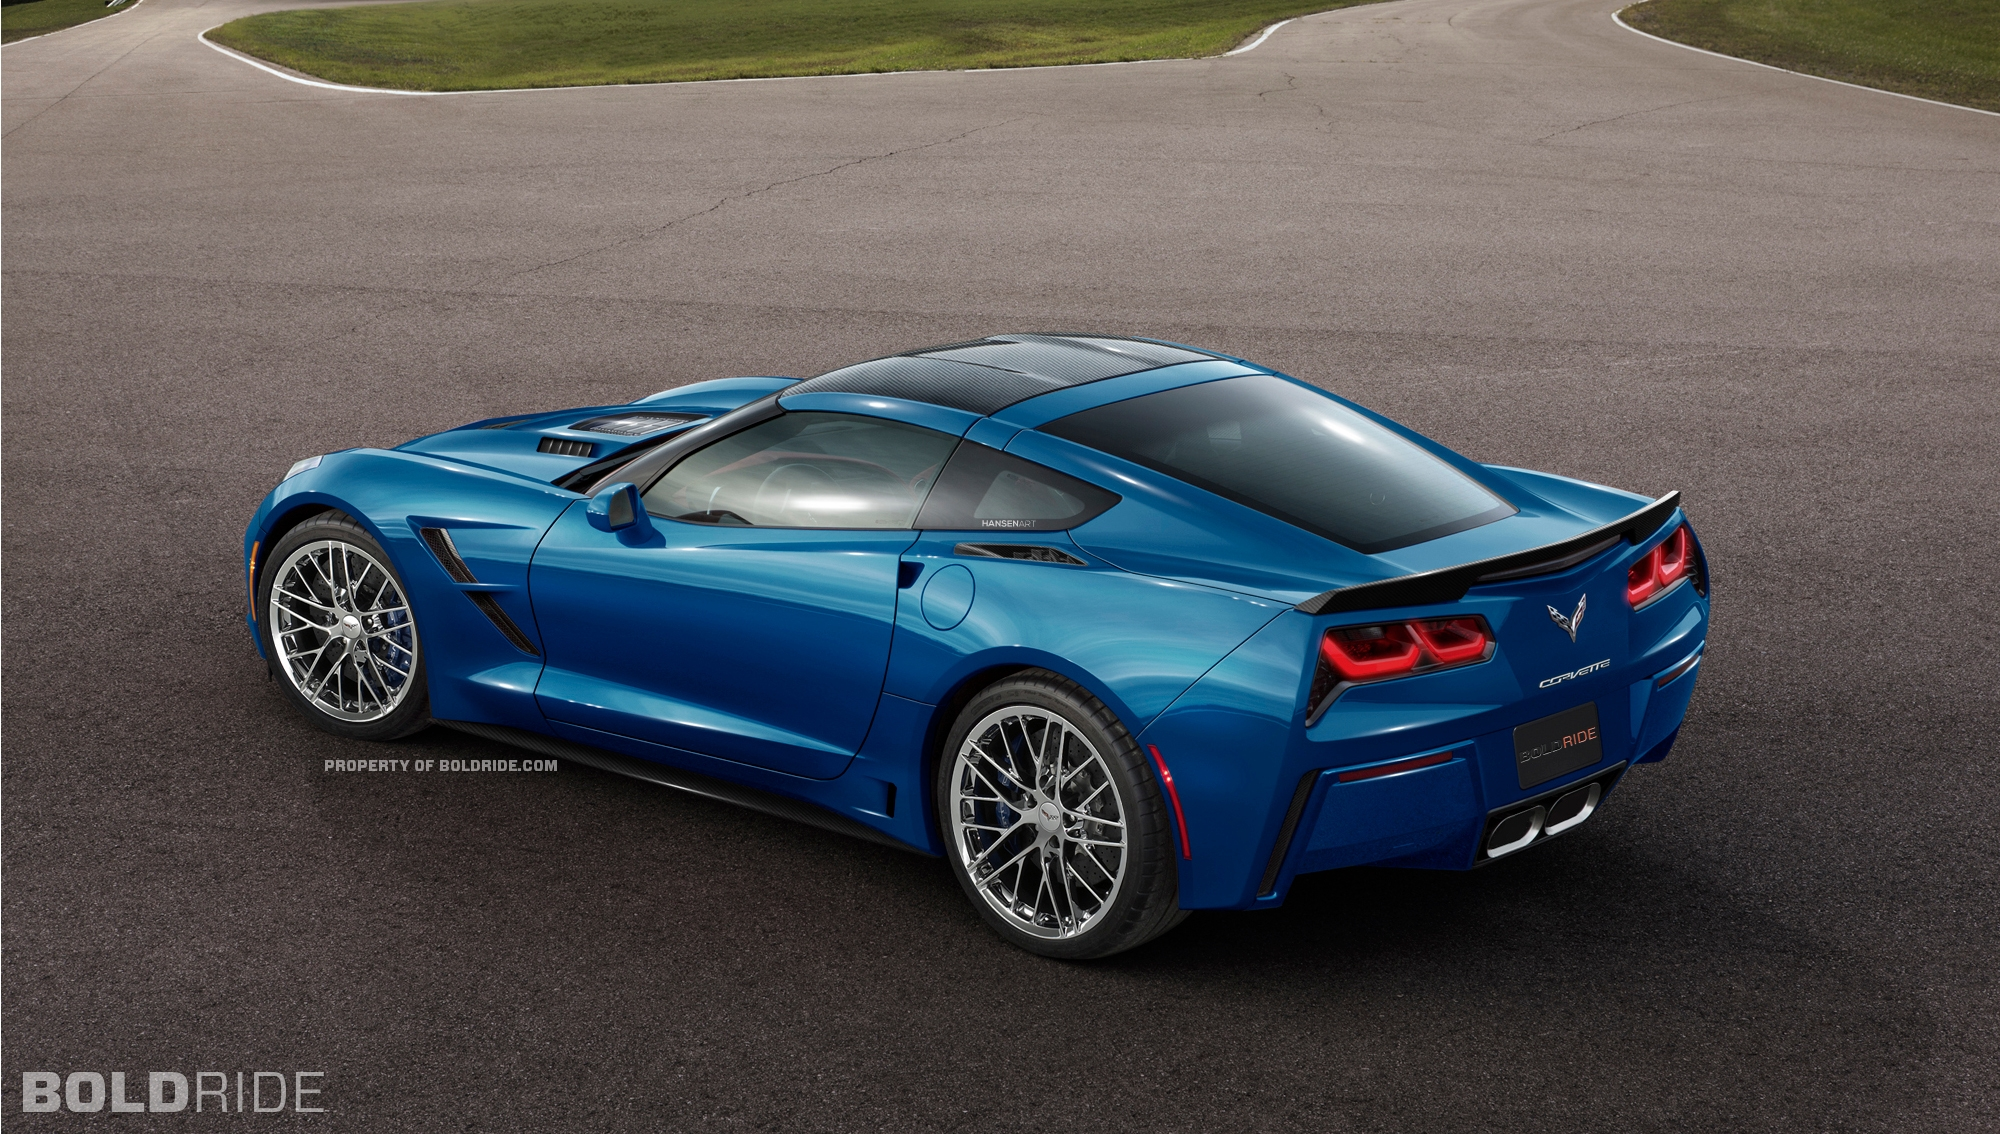 2018 Chevrolet Stingray Concept | Car Photos Catalog 2019